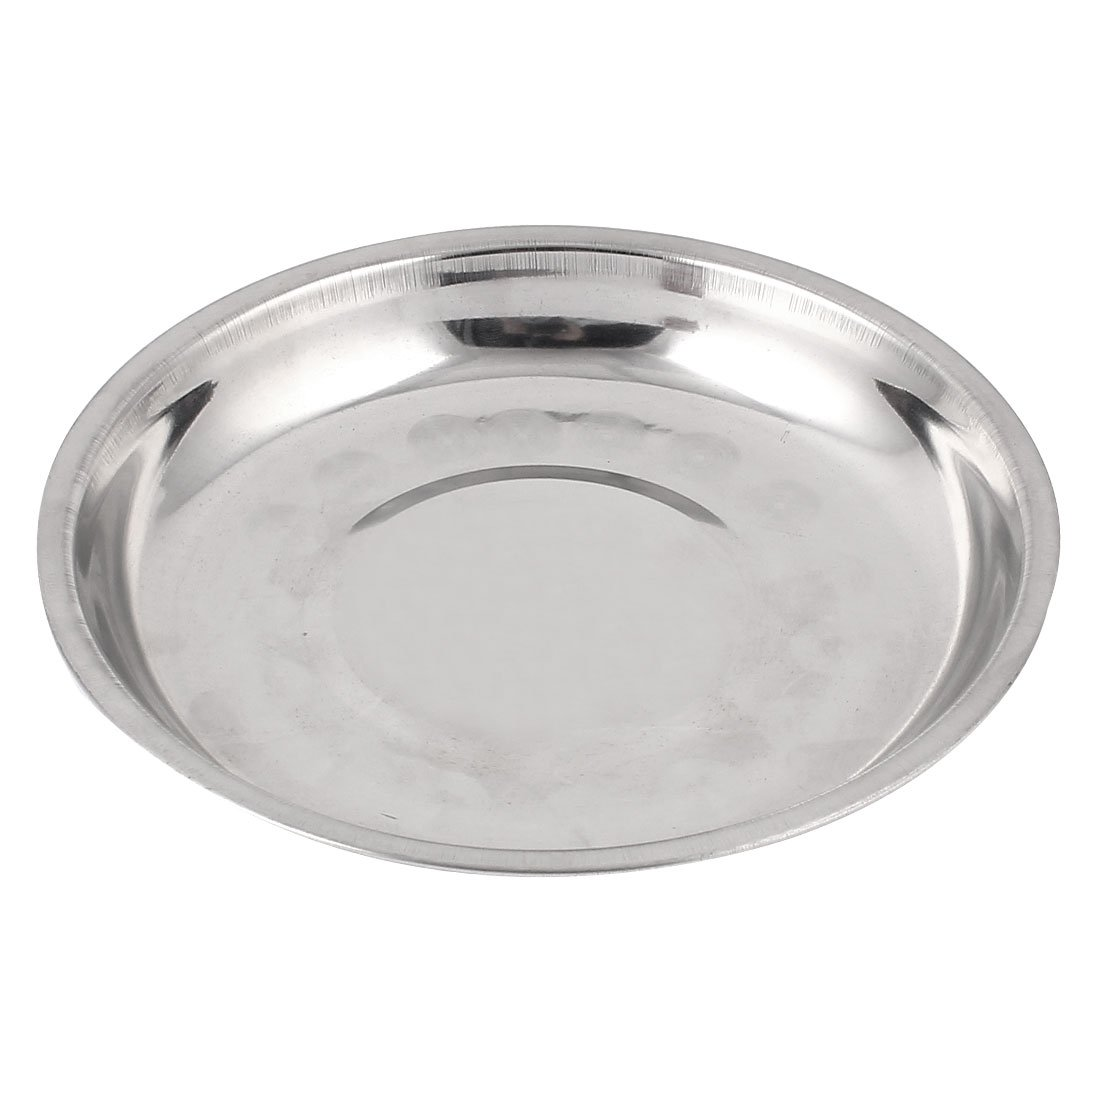 Uxcell a15061800ux0146 Stainless Steel Dinner Plate Dish Food Fruit Holder Container 15cm Dragonmarts - BISS